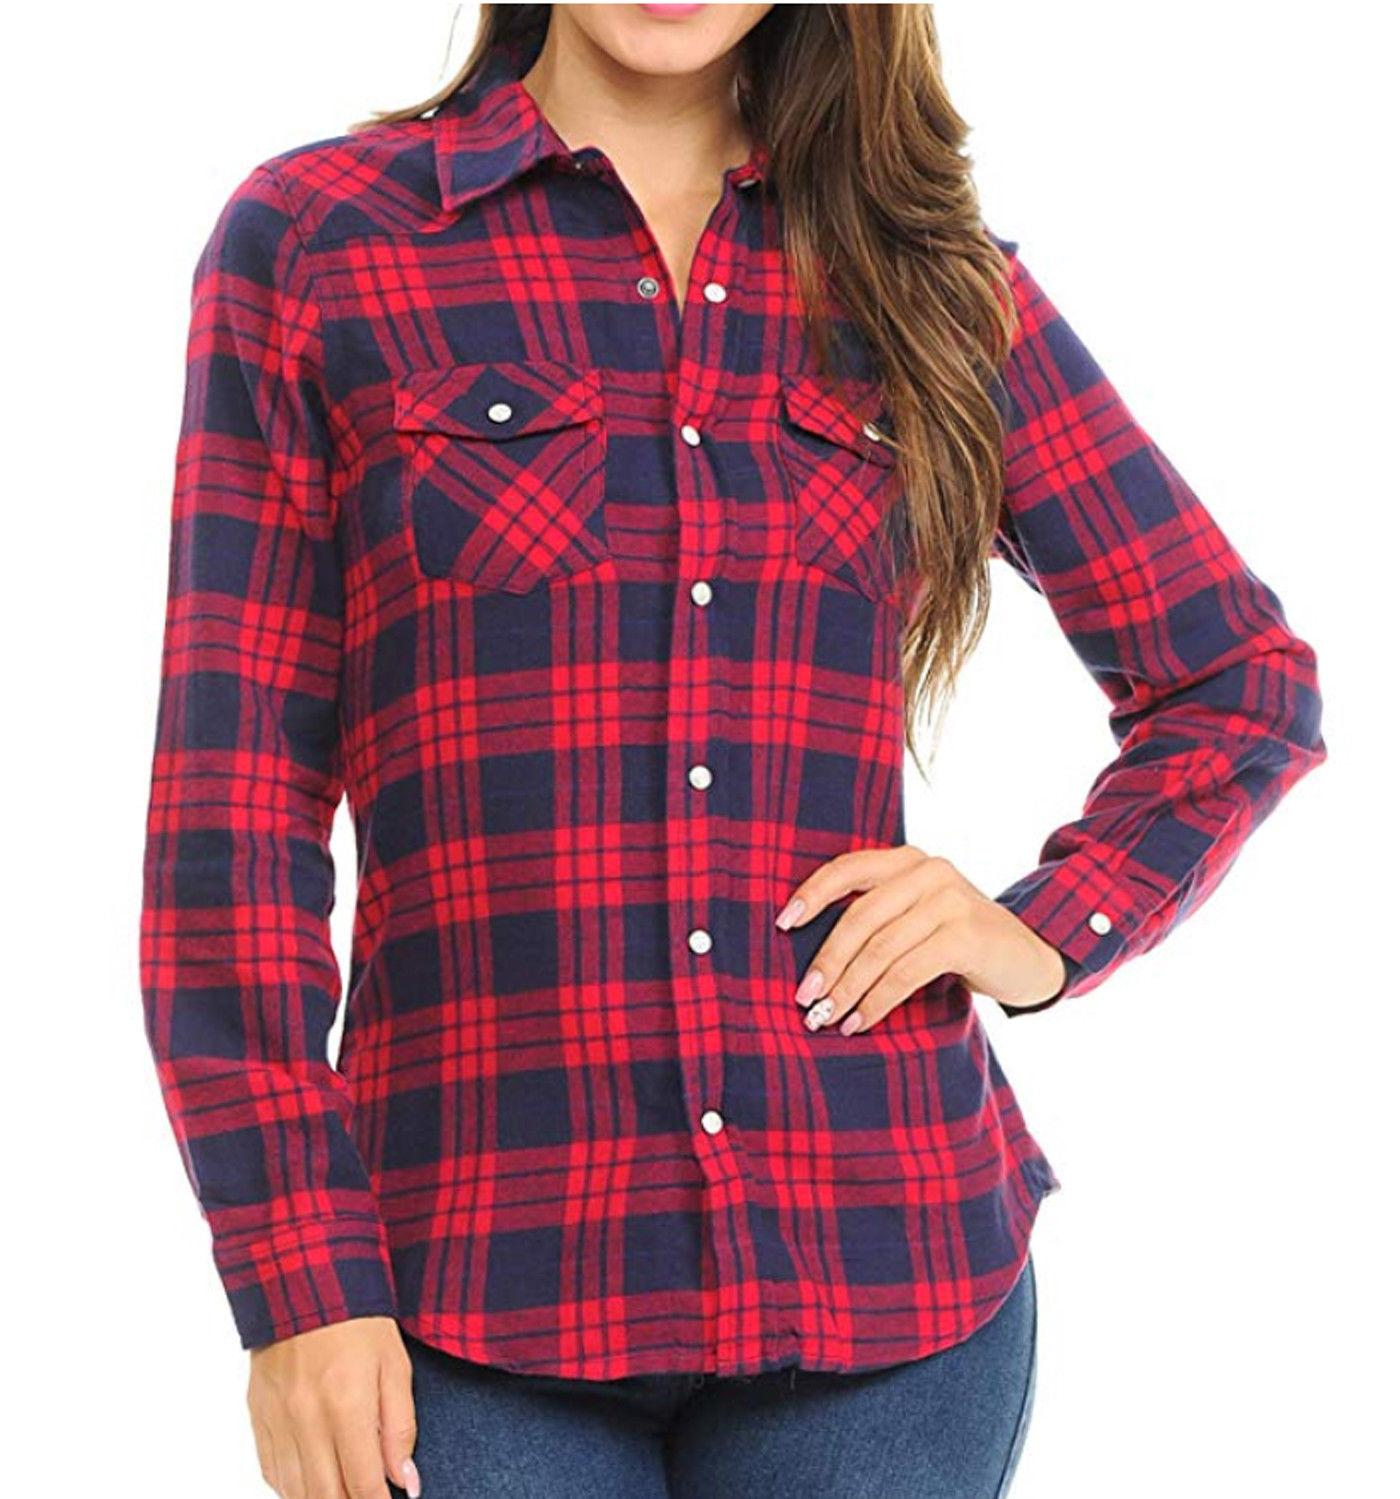 Inso Flannel Checkered Cotton Button Shirts